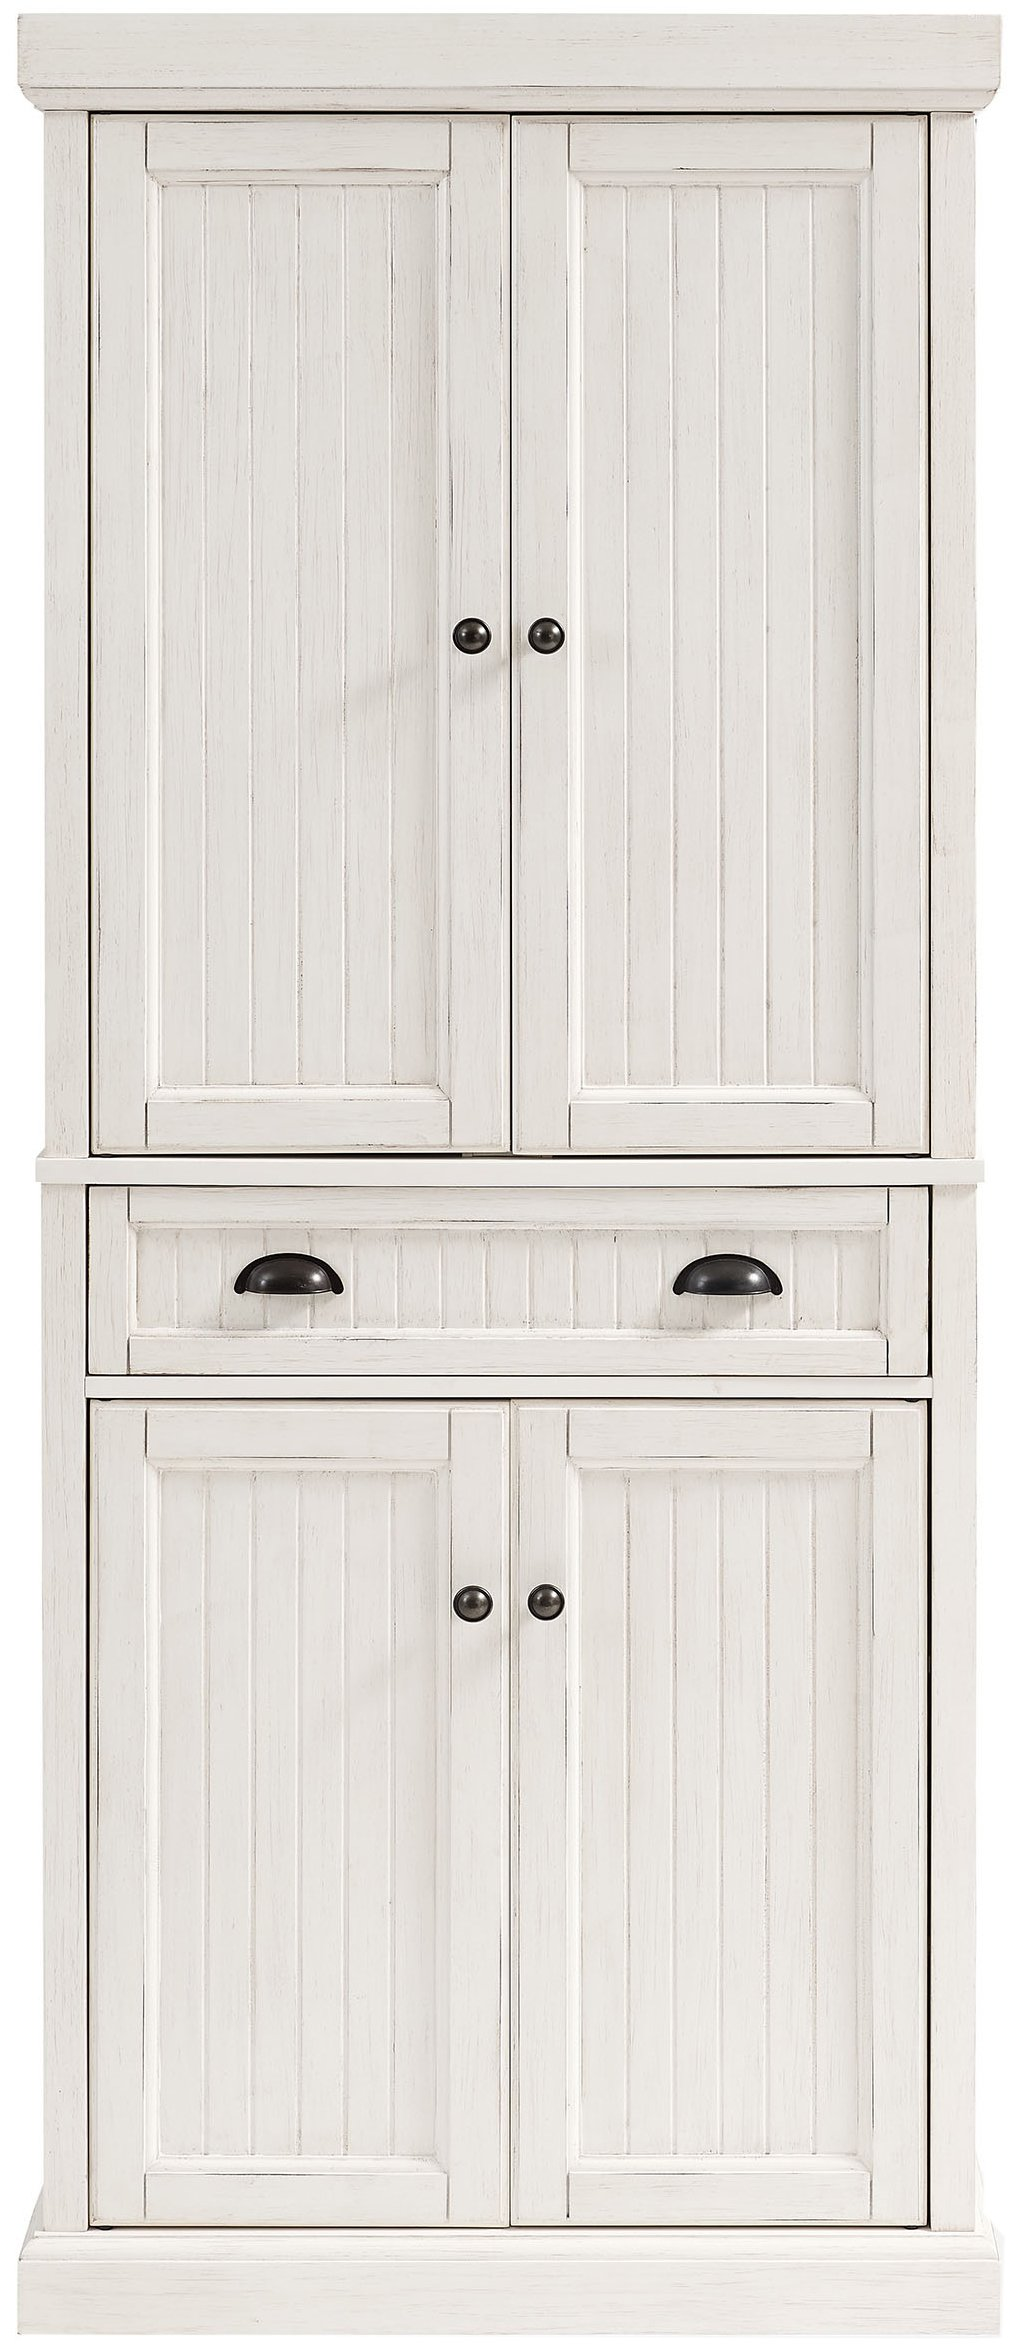 Crosley Furniture Seaside Kitchen Pantry Cabinet - Distressed White by Crosley Furniture (Image #2)